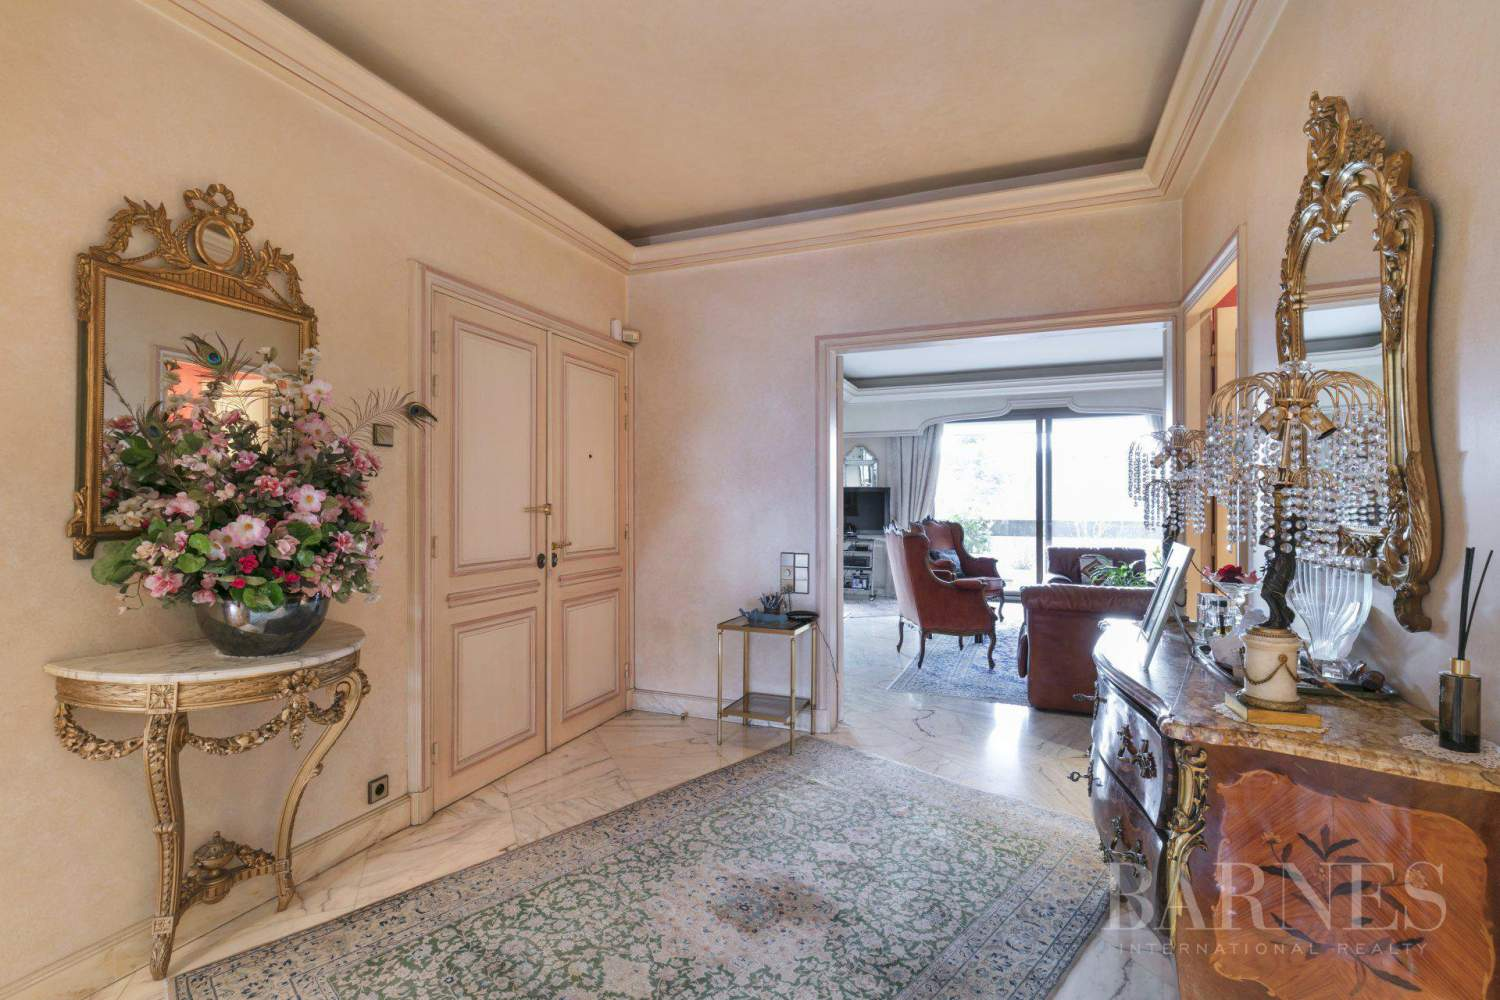 NEUILLY - BOIS - APPARTEMENT 5 PIECES - BALCONS LARGES - VUES PANORAMIQUES picture 3